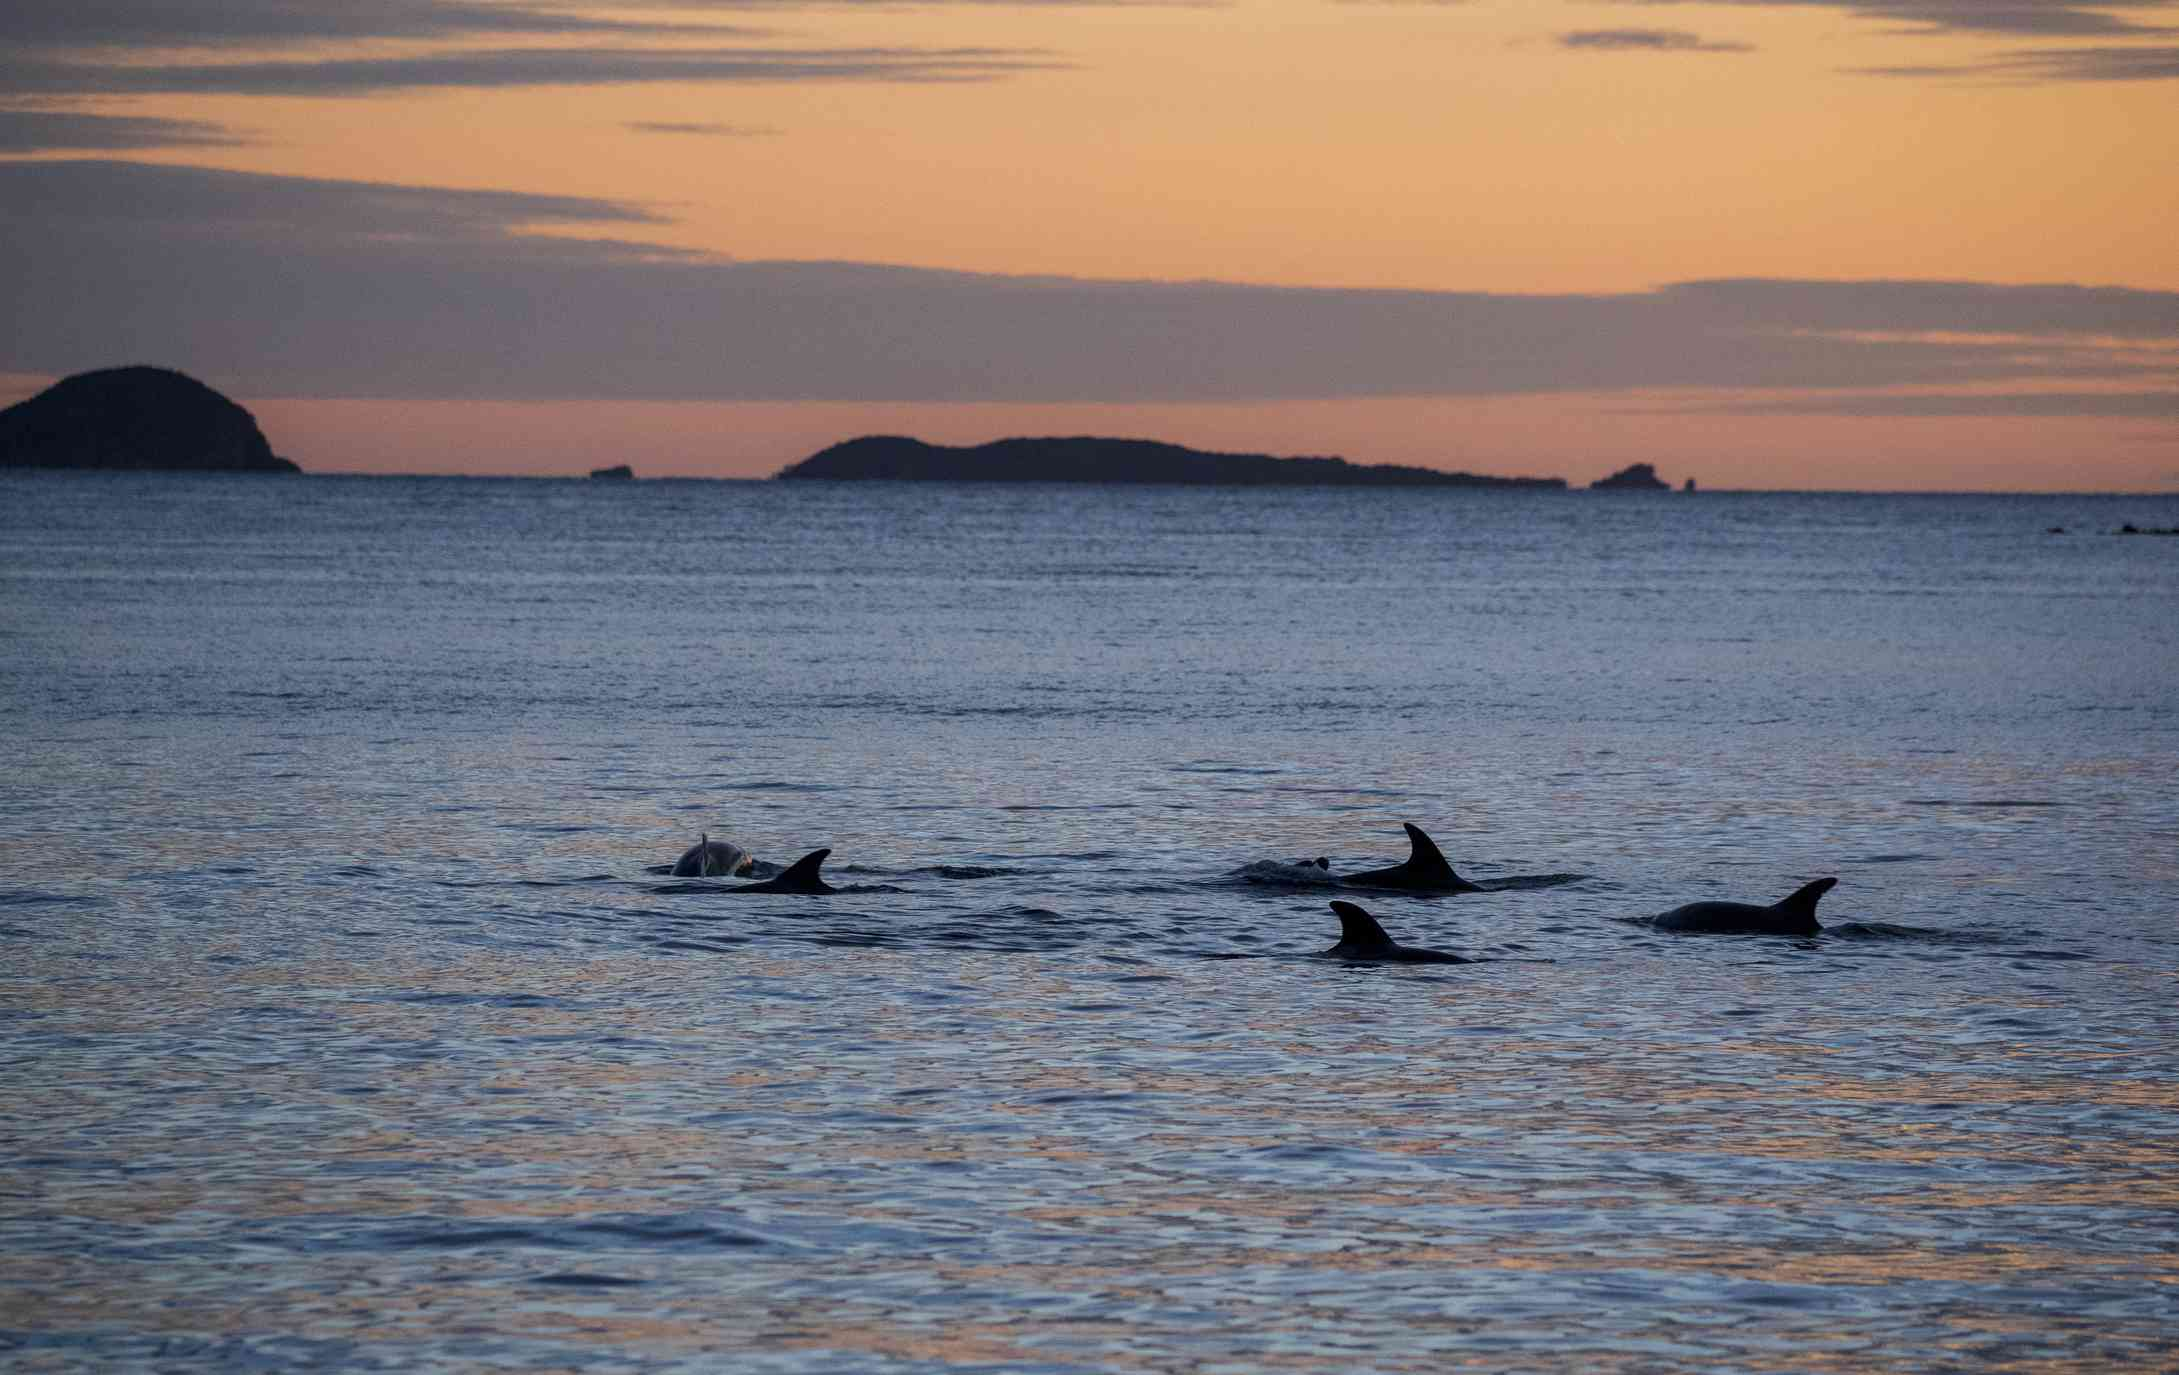 dorsal fins of a pod of dolphins breaking the water with a sunset and islands in the background